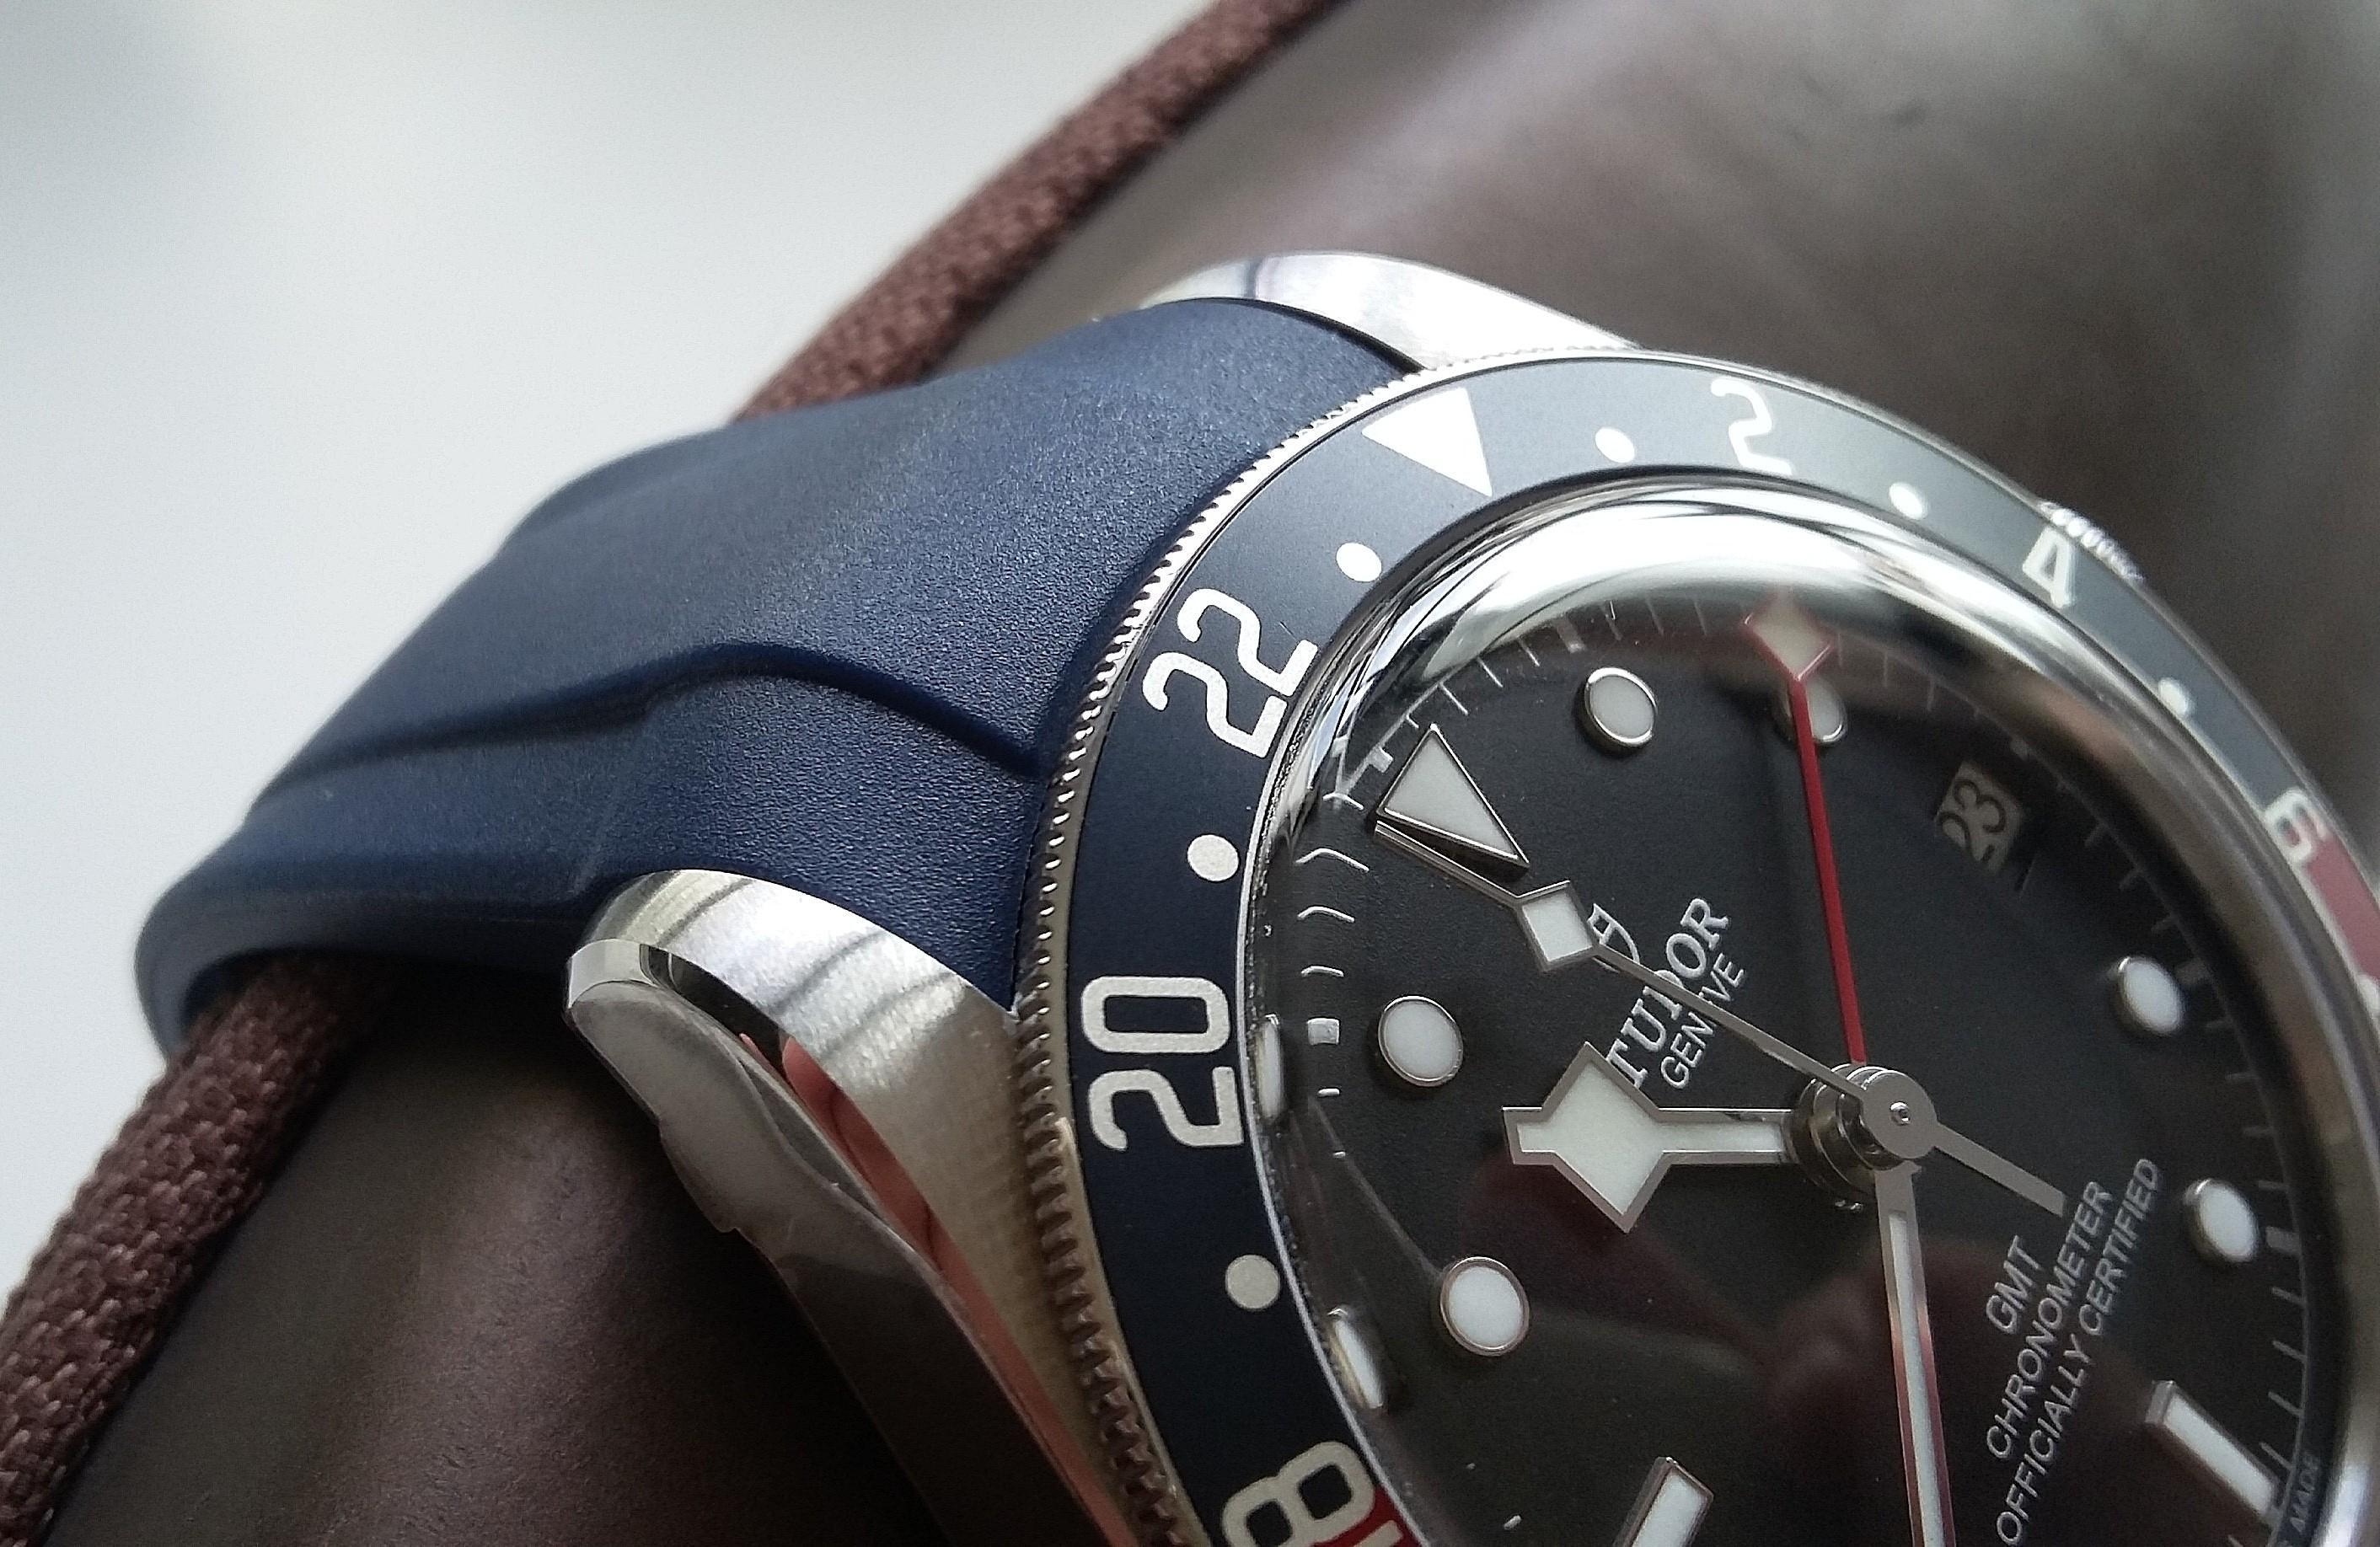 LATEST 22MM OXFORD BLUE CURVED LUG END VULCANISED RUBBER STRAP WITH 316L STEEL CLASP FOR ALL TUDOR BLACK BAY ( PRICE INCLUDES FITMENT)